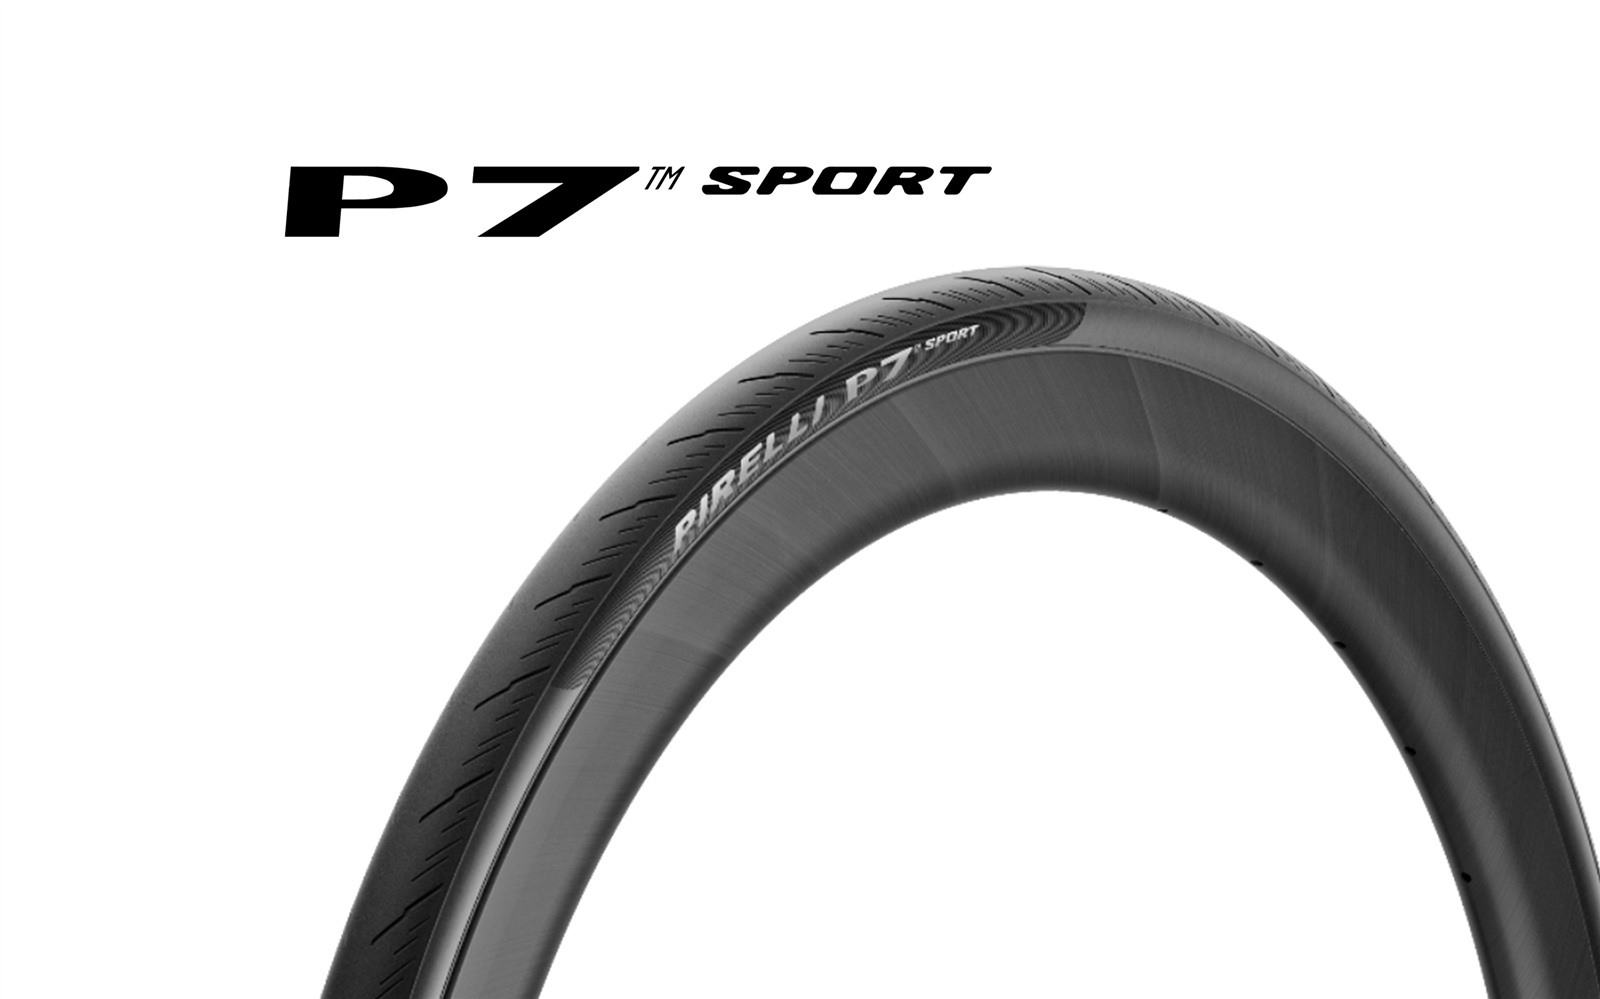 Discover P7™ Sport , the new Pirelli's tires for all-round use